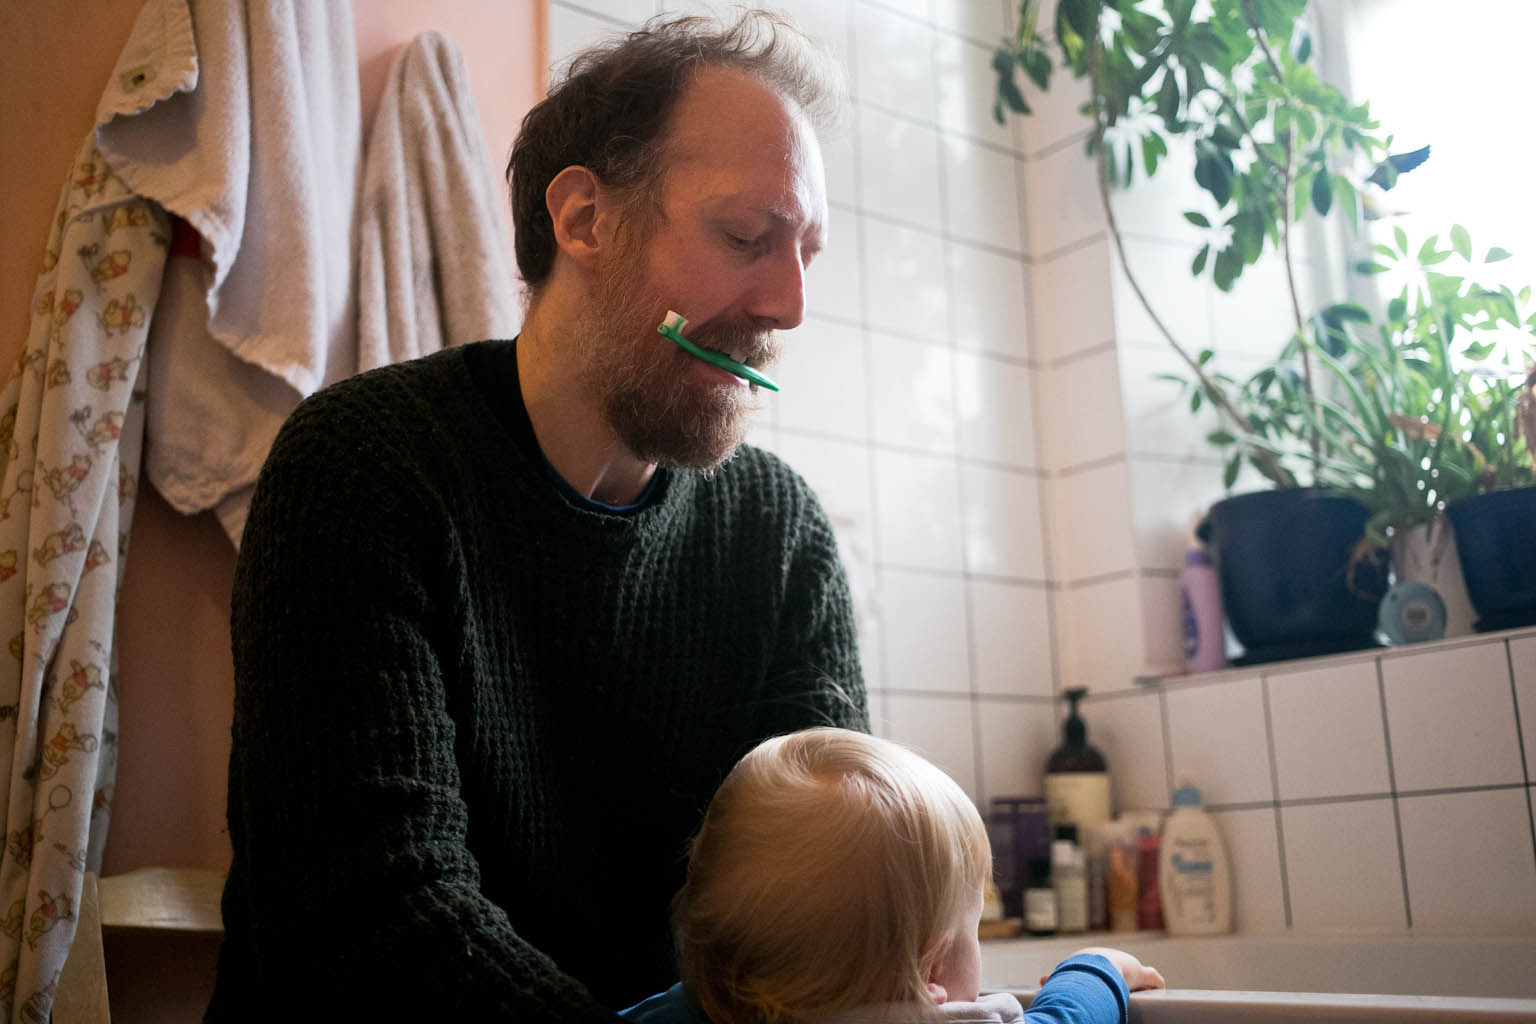 Father with baby toothbrush in teeth picking up son